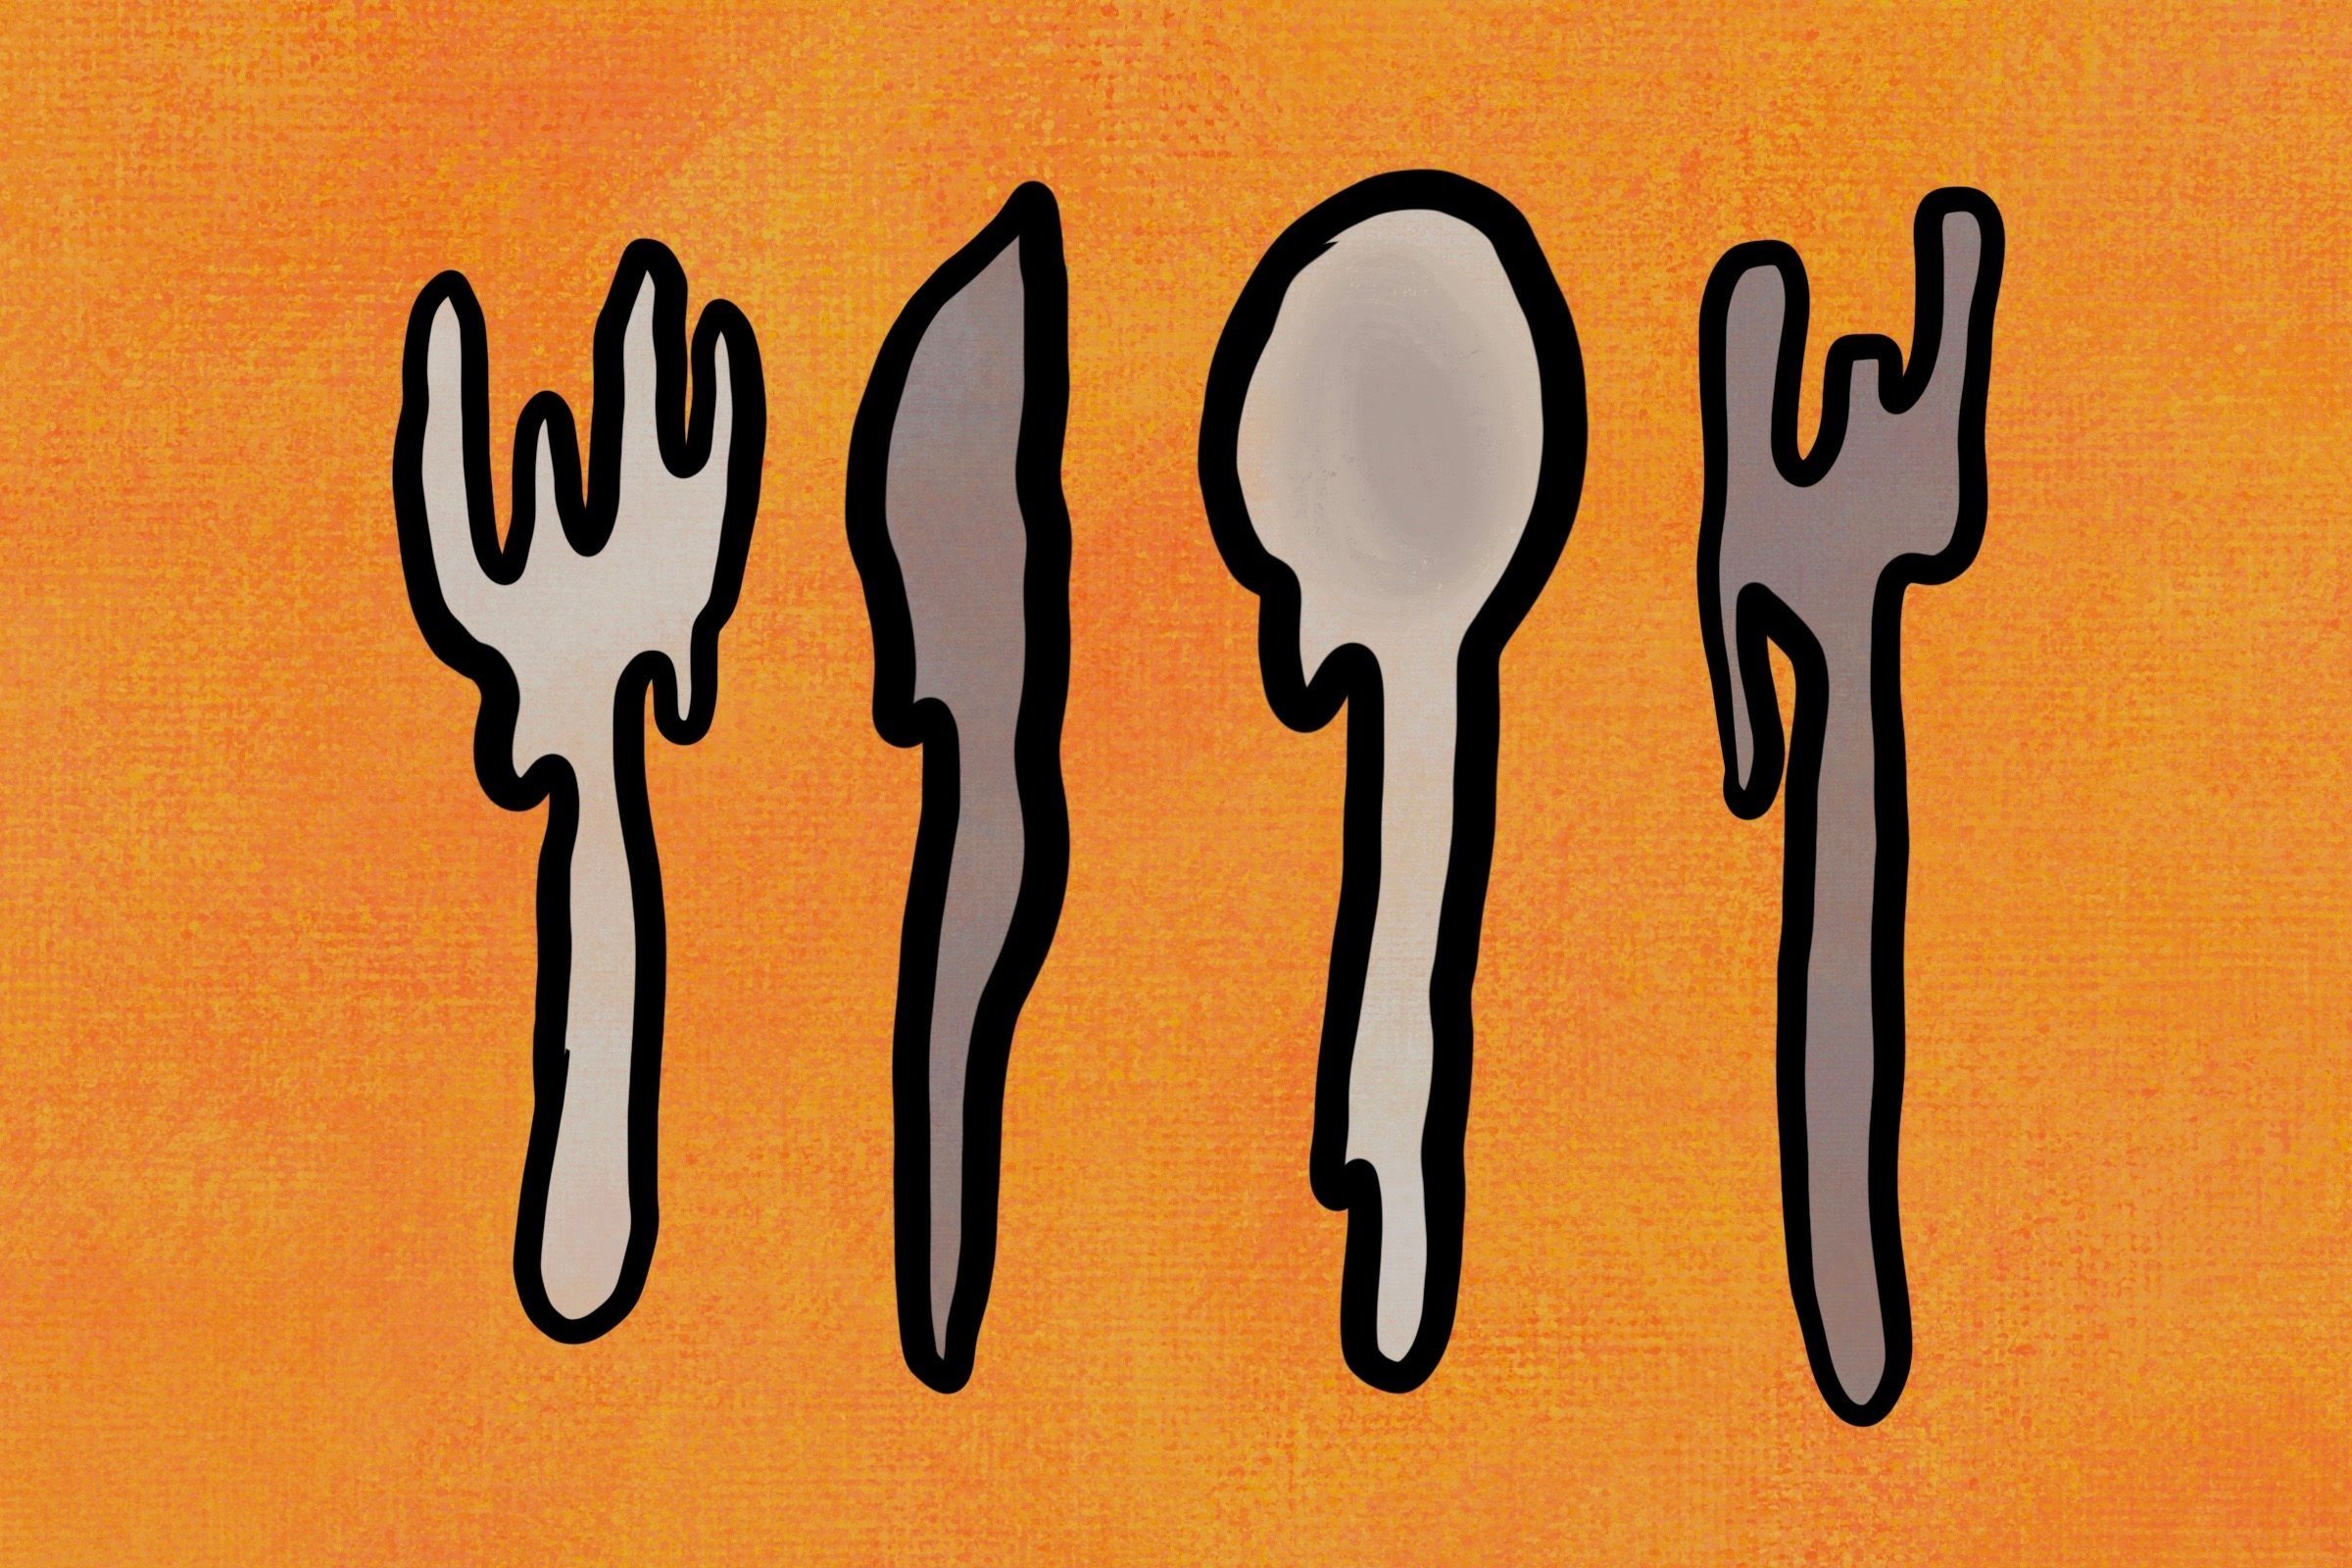 melted silverware